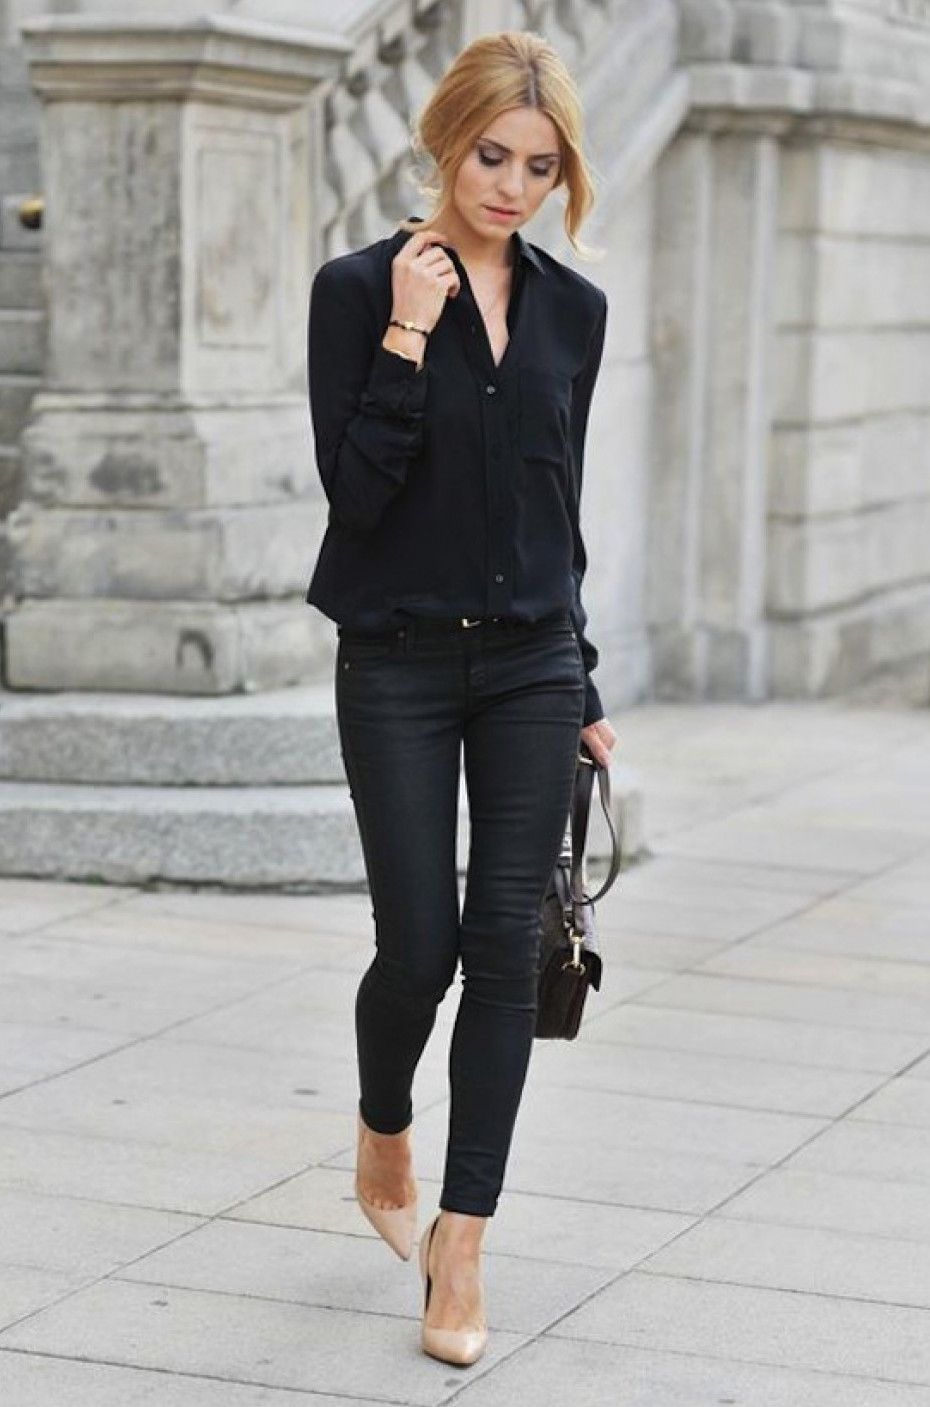 New Trendy Black Jeans Outfits Ideas For Women 12